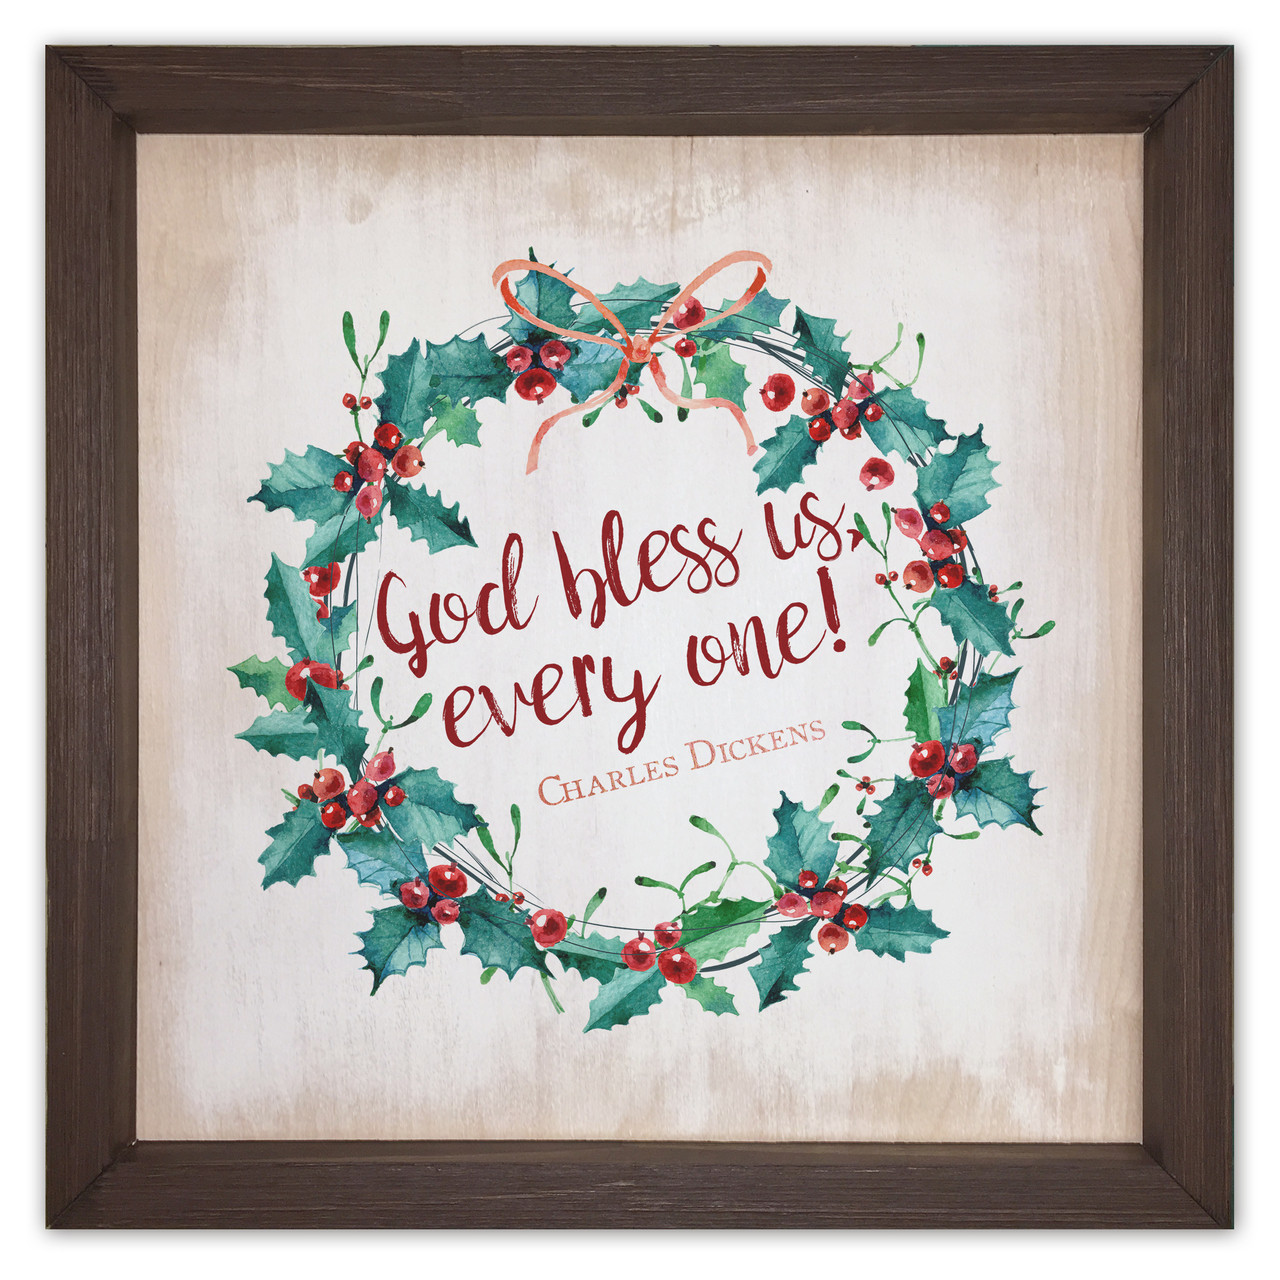 god bless us rustic framed quote catholic to the max online